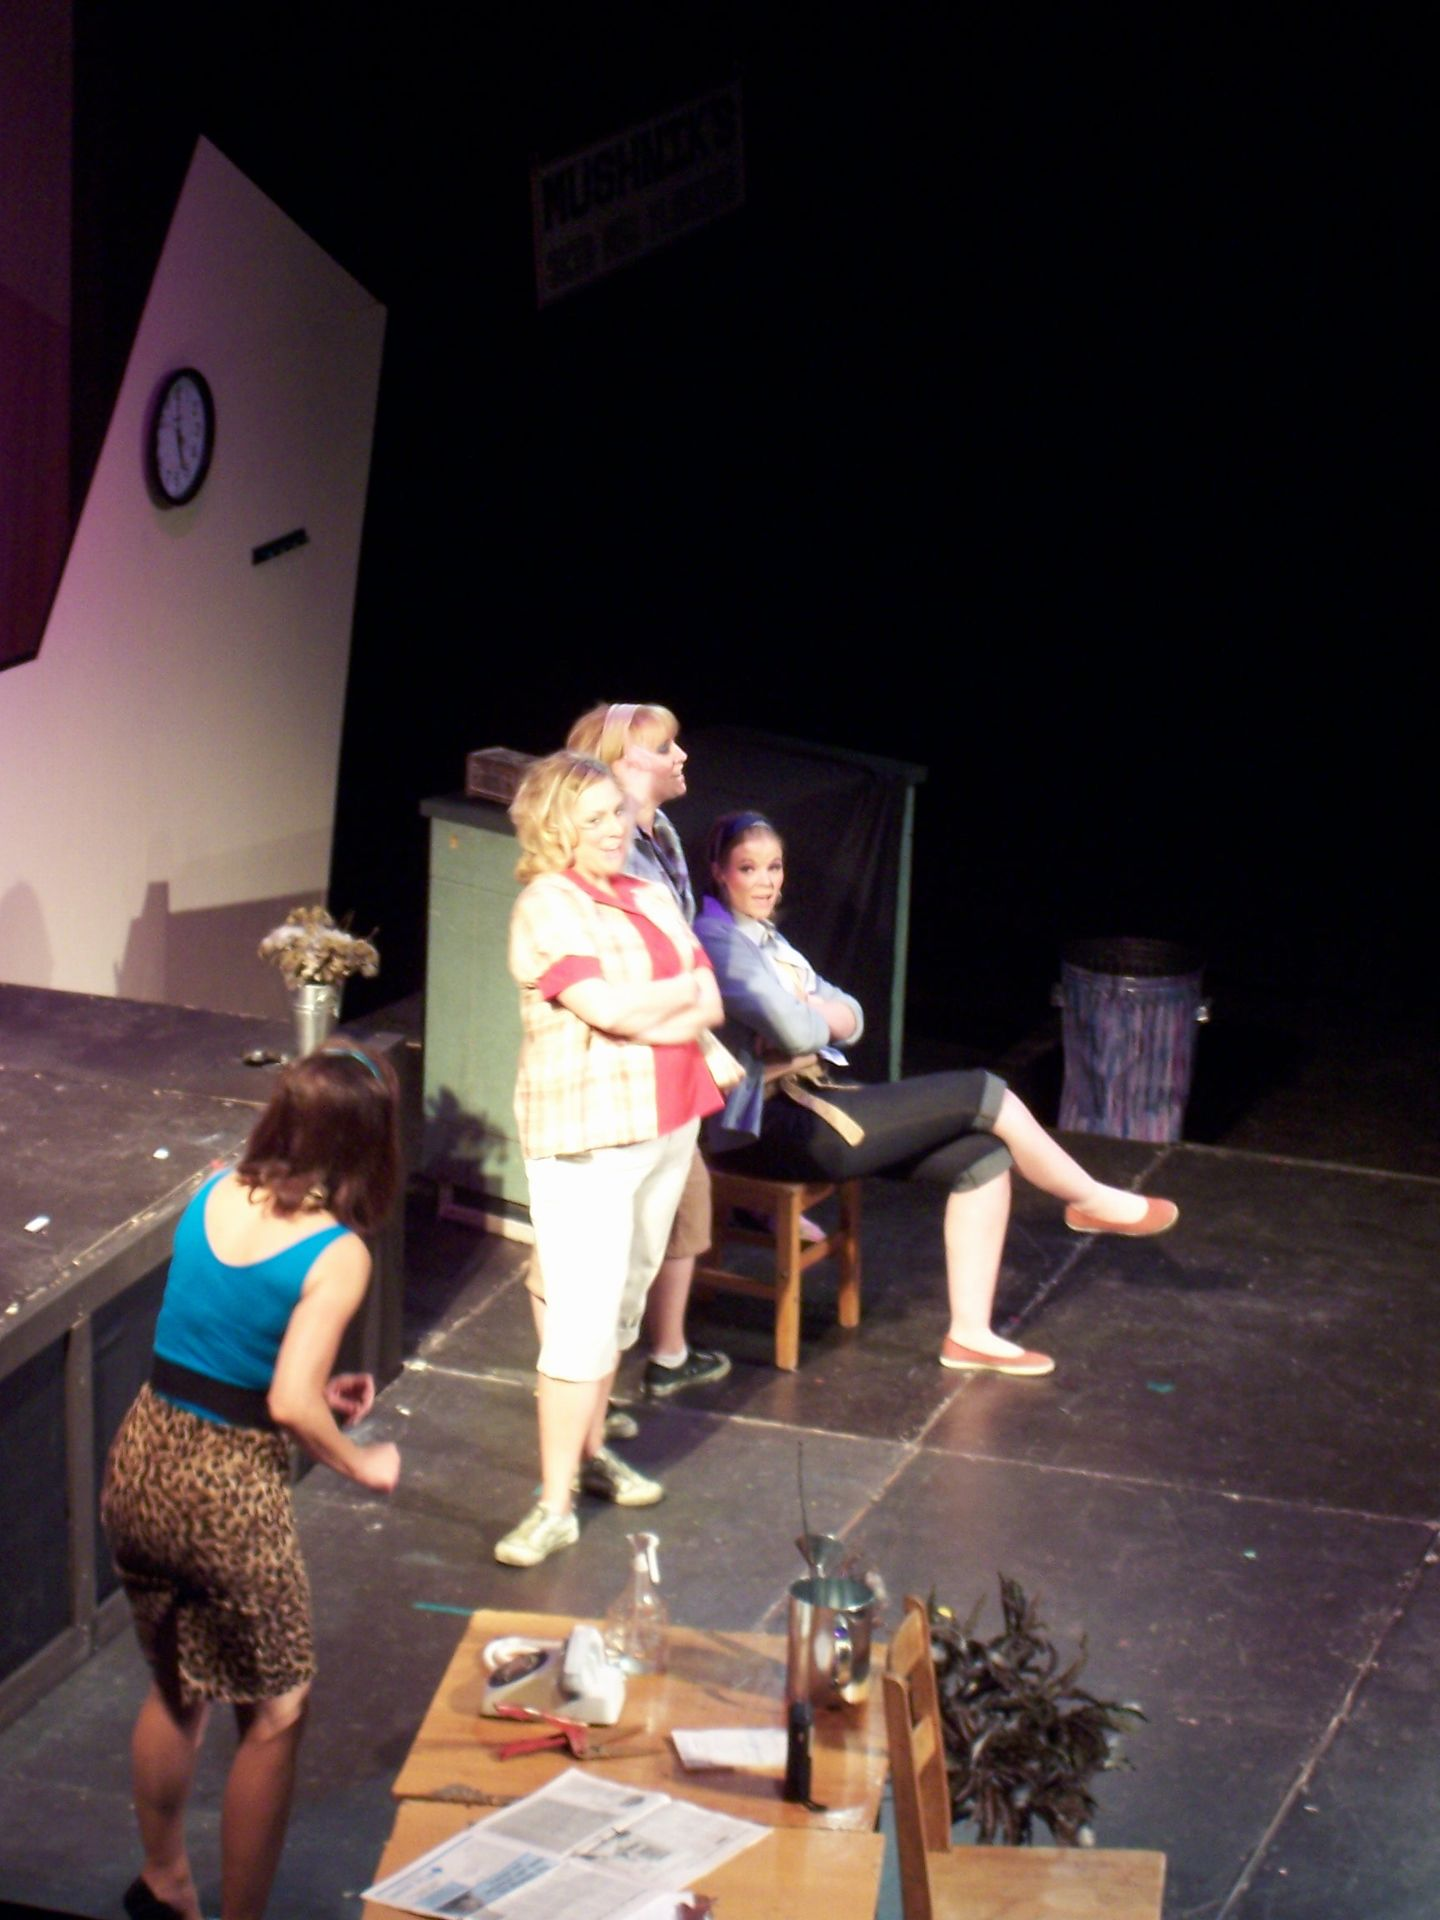 Christine Horne, Lyndsey Paterson, Heather Oystryk and Krista Willott in Little Shop of Horrors